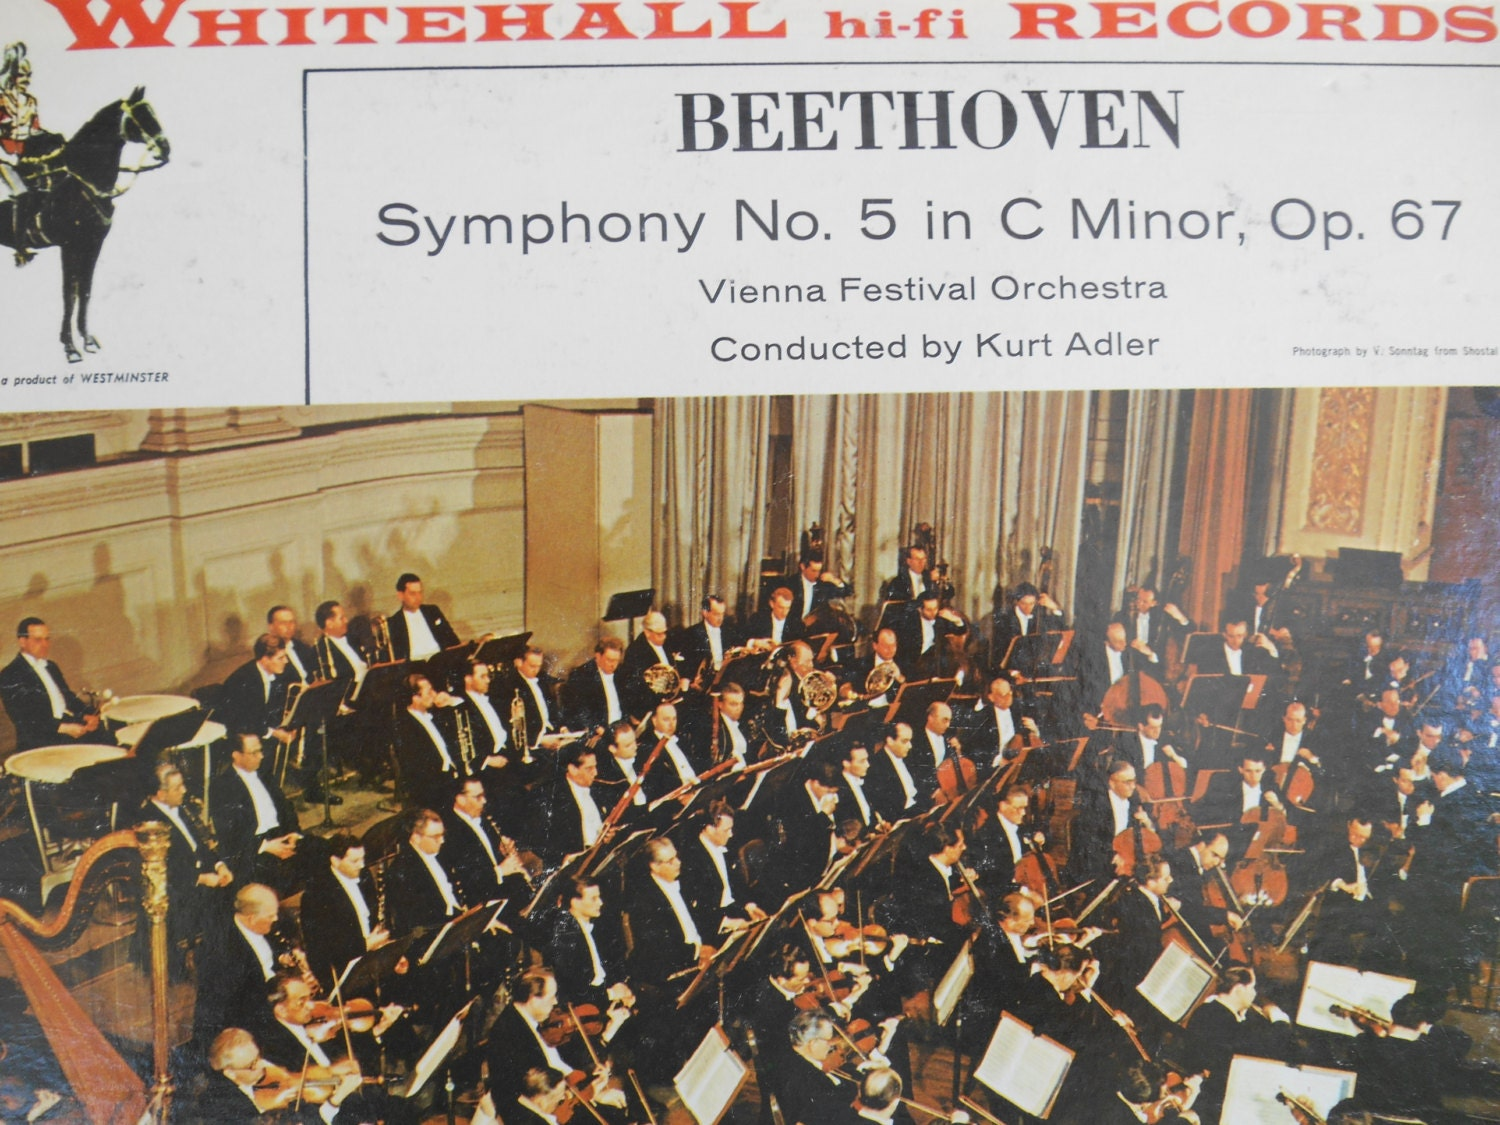 beethoven symphony no 5 in c minor op 67 Print and download symphony no 5 in c minor, op 67 - 1st movement [complete] sheet music composed by ludwig van beethoven arranged for piano instrumental solo in c minor.